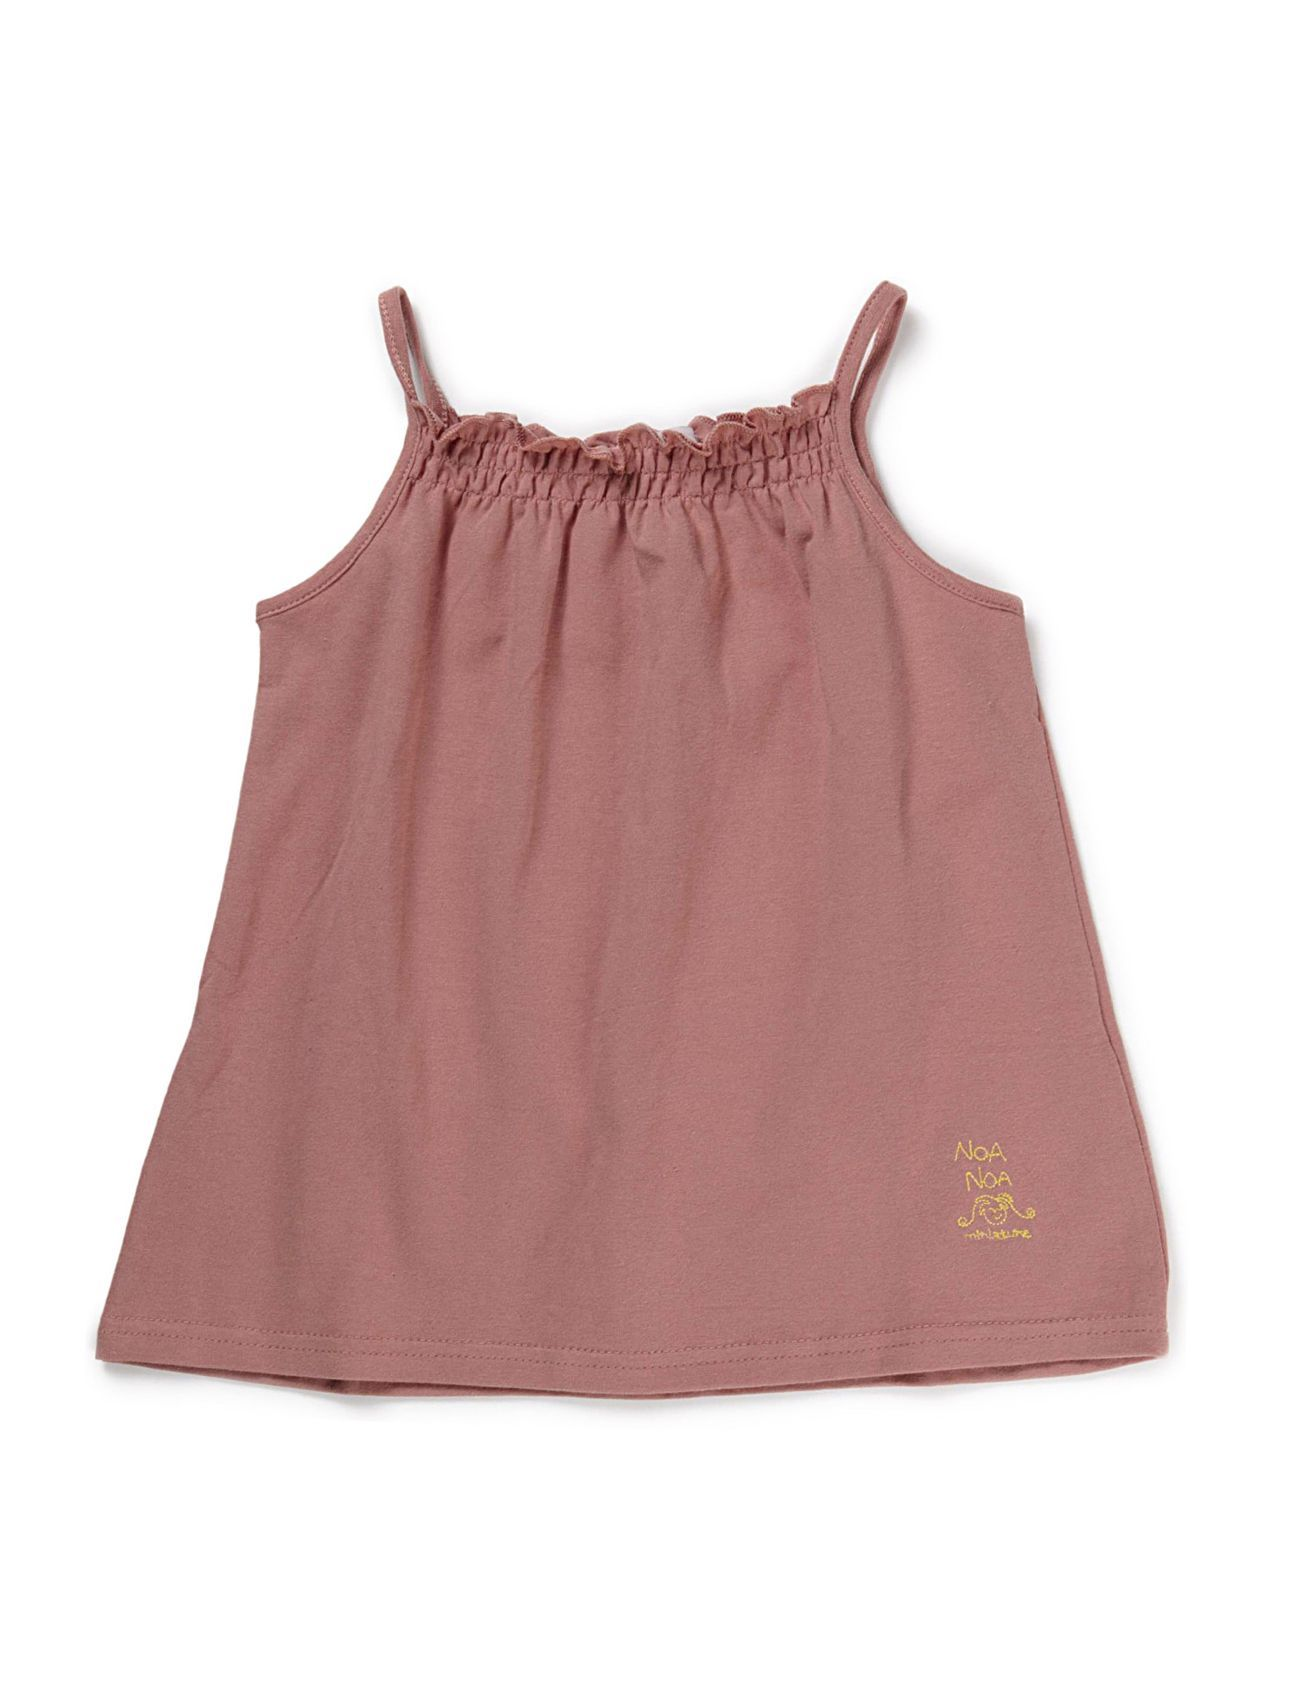 Noa Noa Miniature Top strap